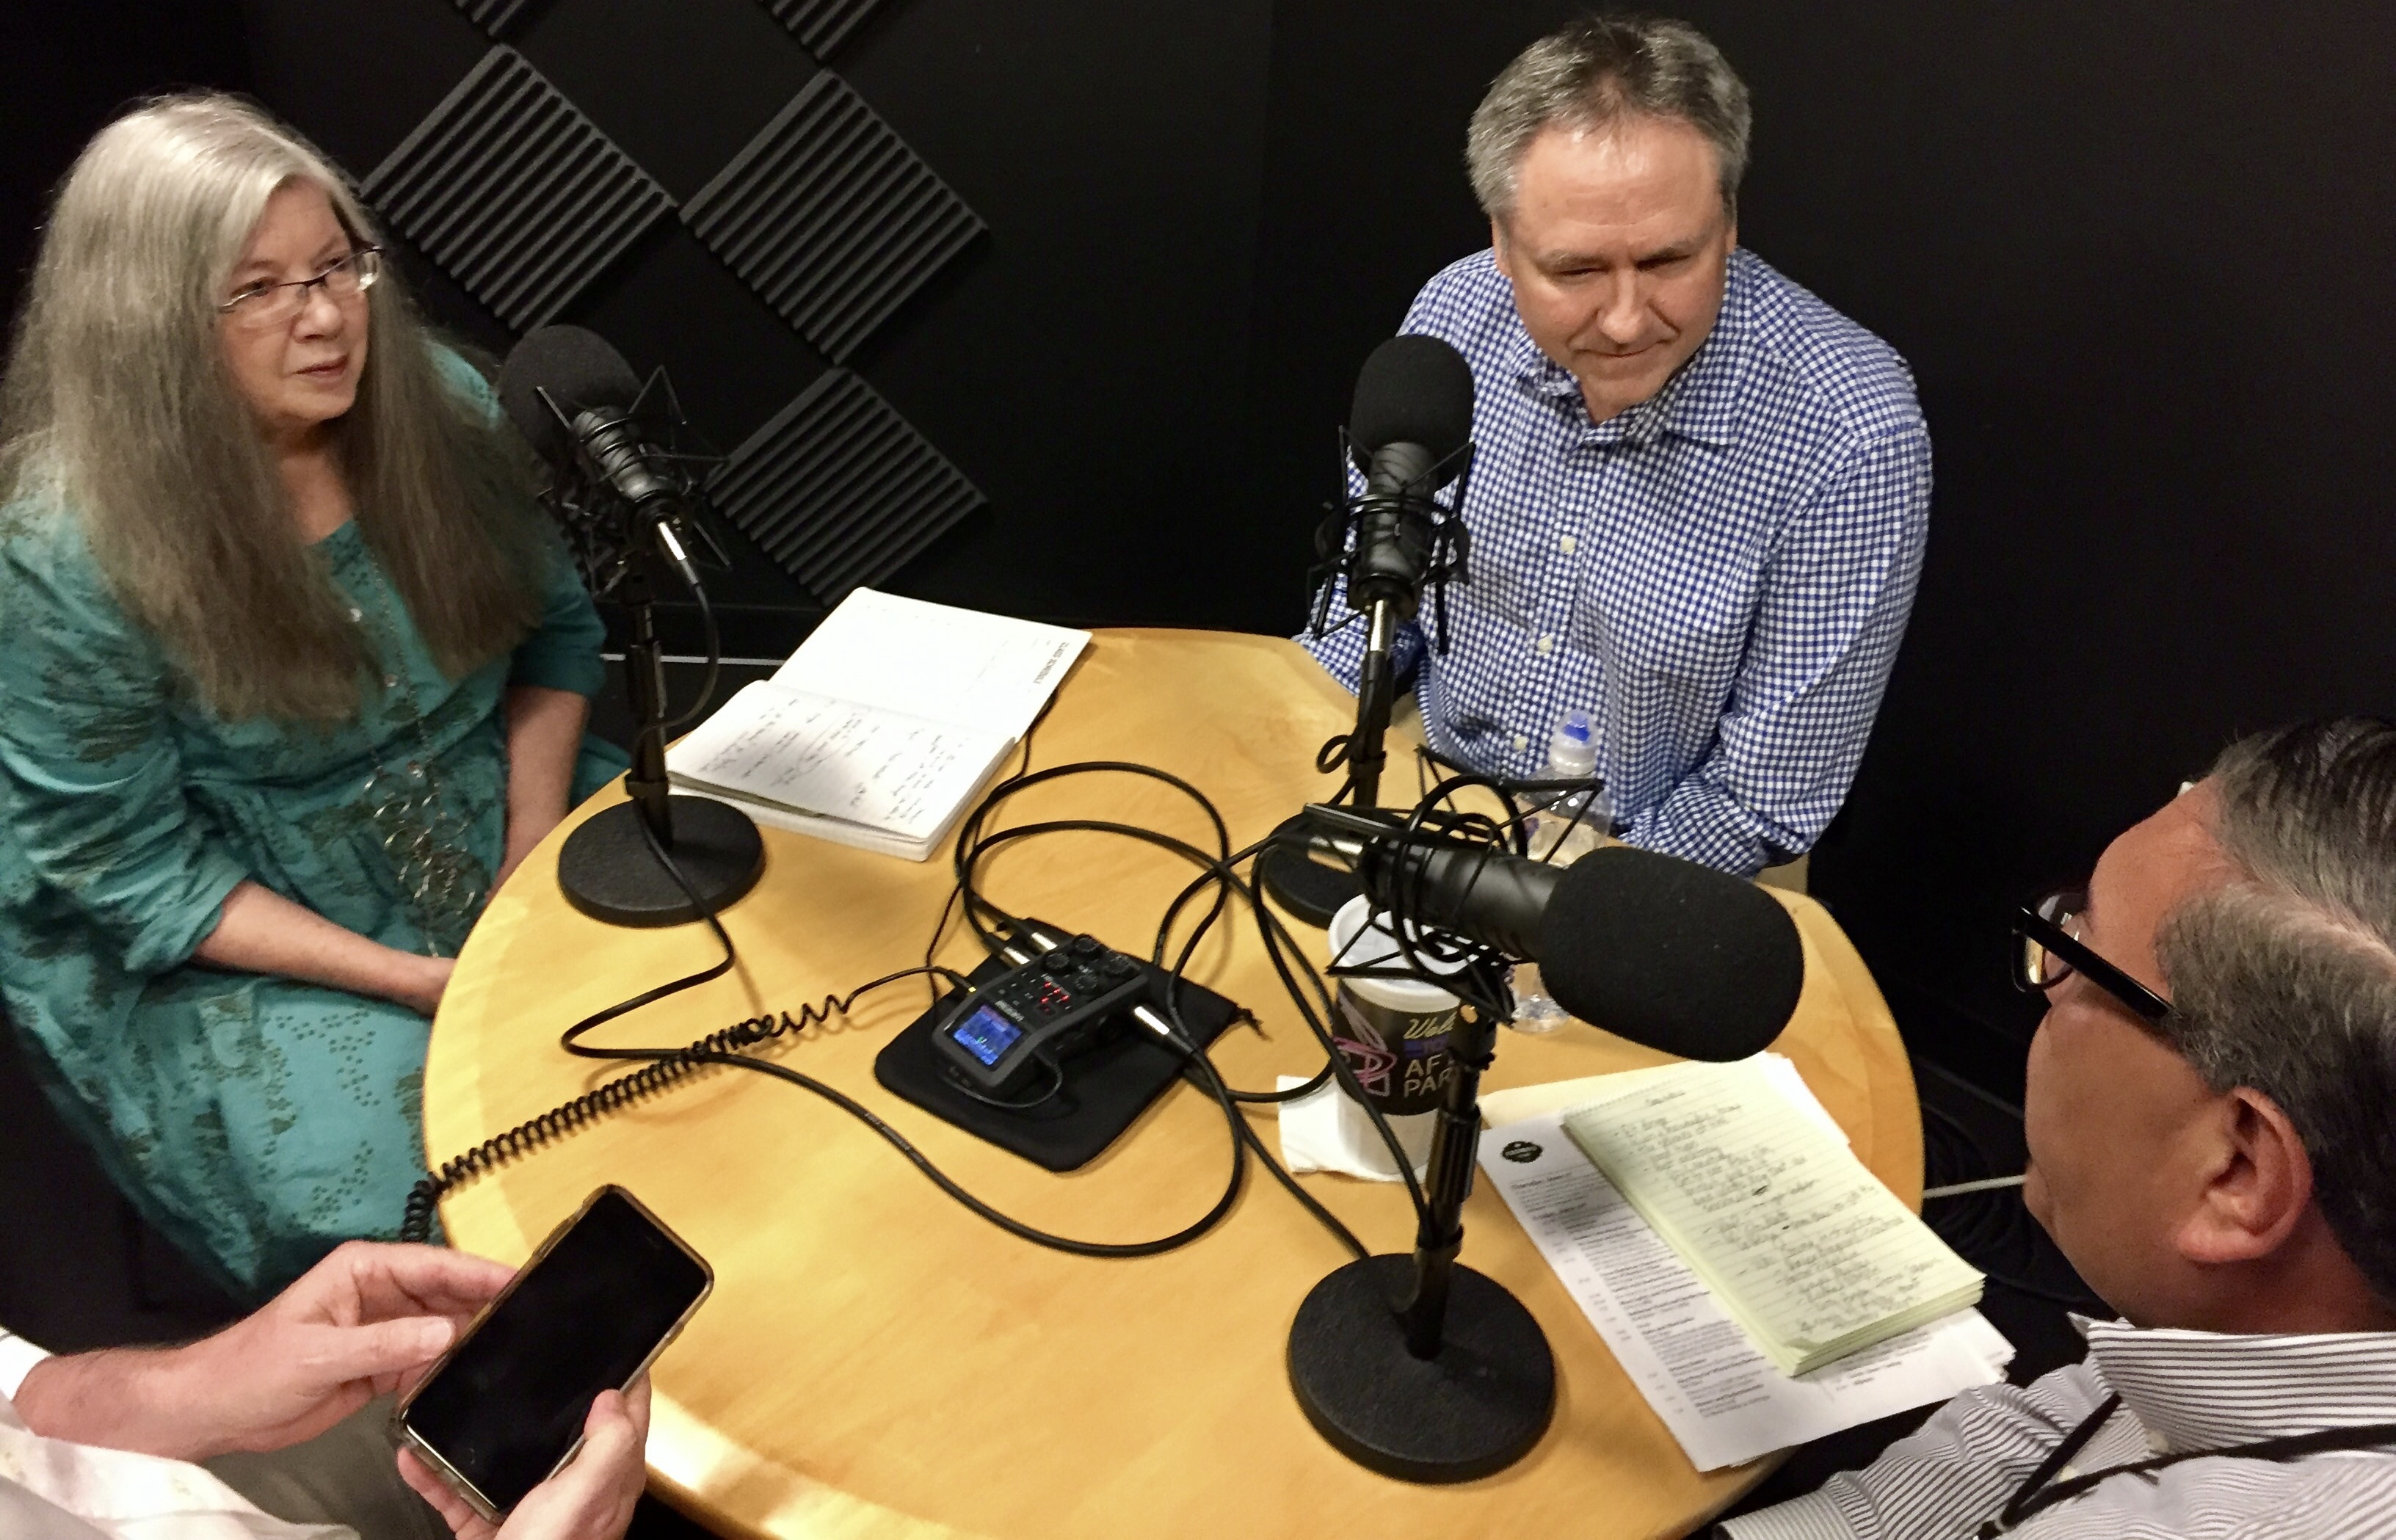 From left, Alison Cook, J.C. Reid and Greg Morago film the third episode of the Houston Chronicle's BBQ podcast. (Photo by Kristen Hare/Poynter)